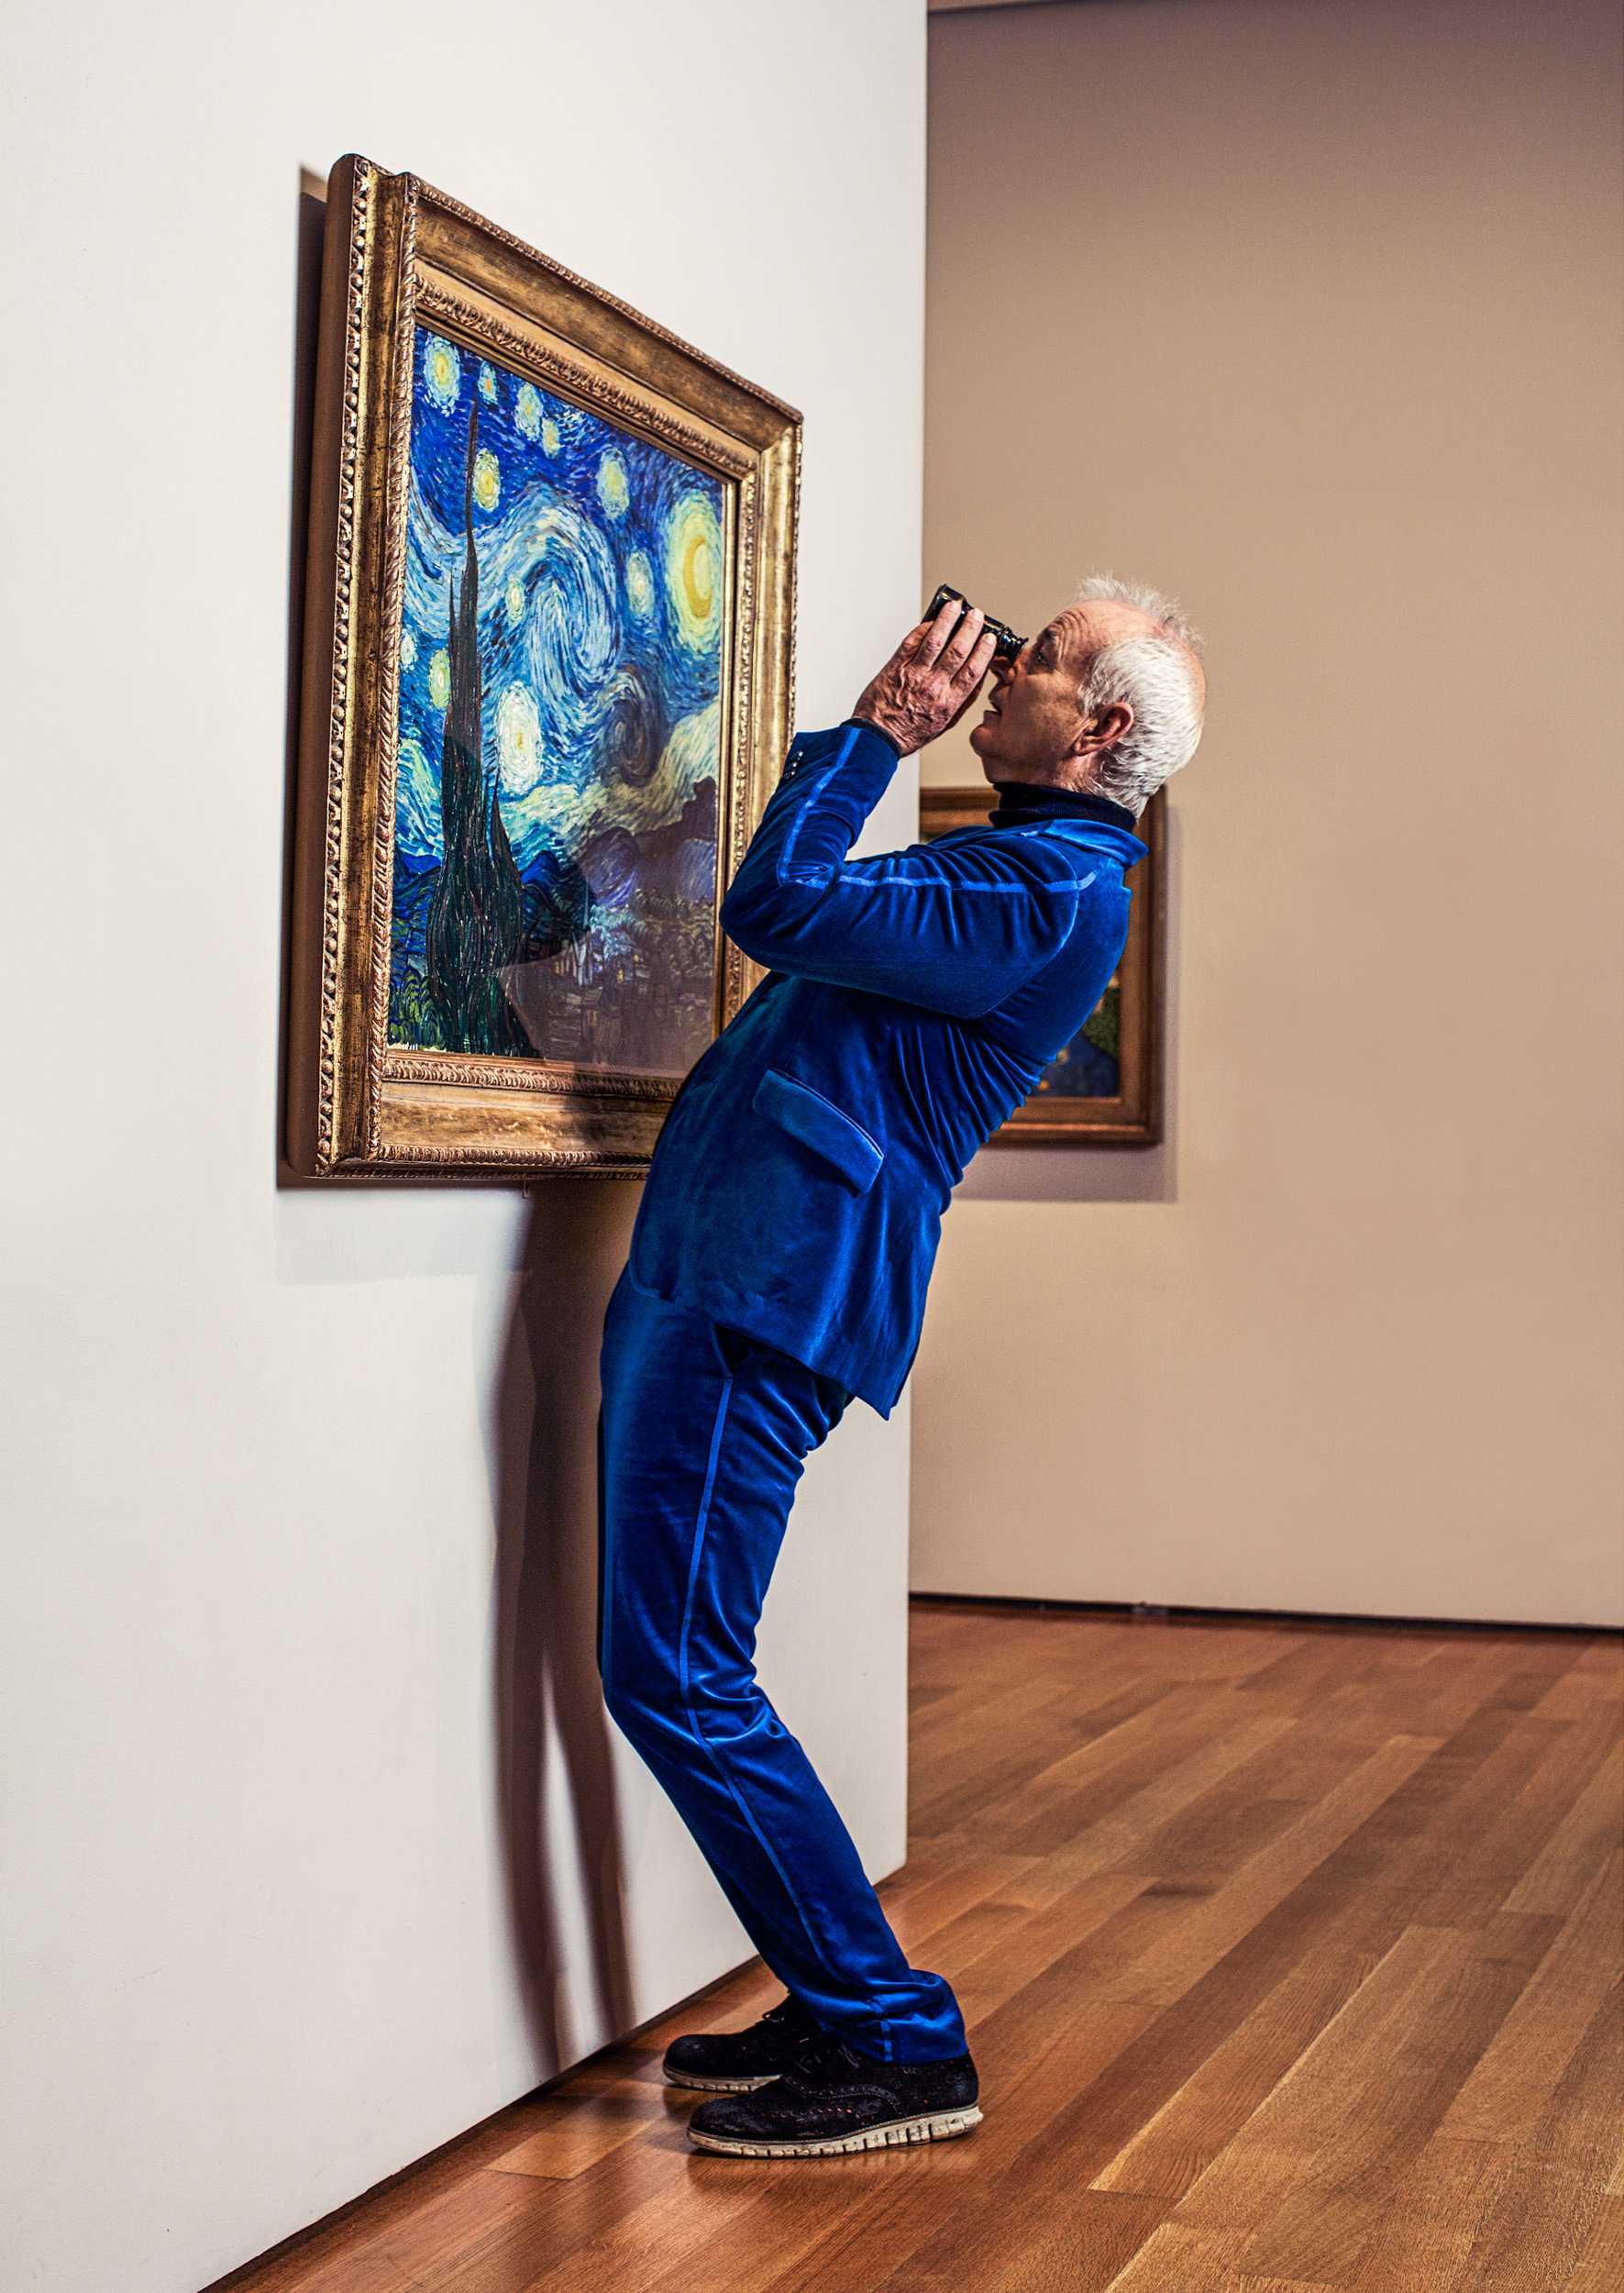 BILL MURRAY. Photographiert im Museum of Modern Art New York mit dem original des %22Nachthimmel%22 von Vincent van Gogh.jpg